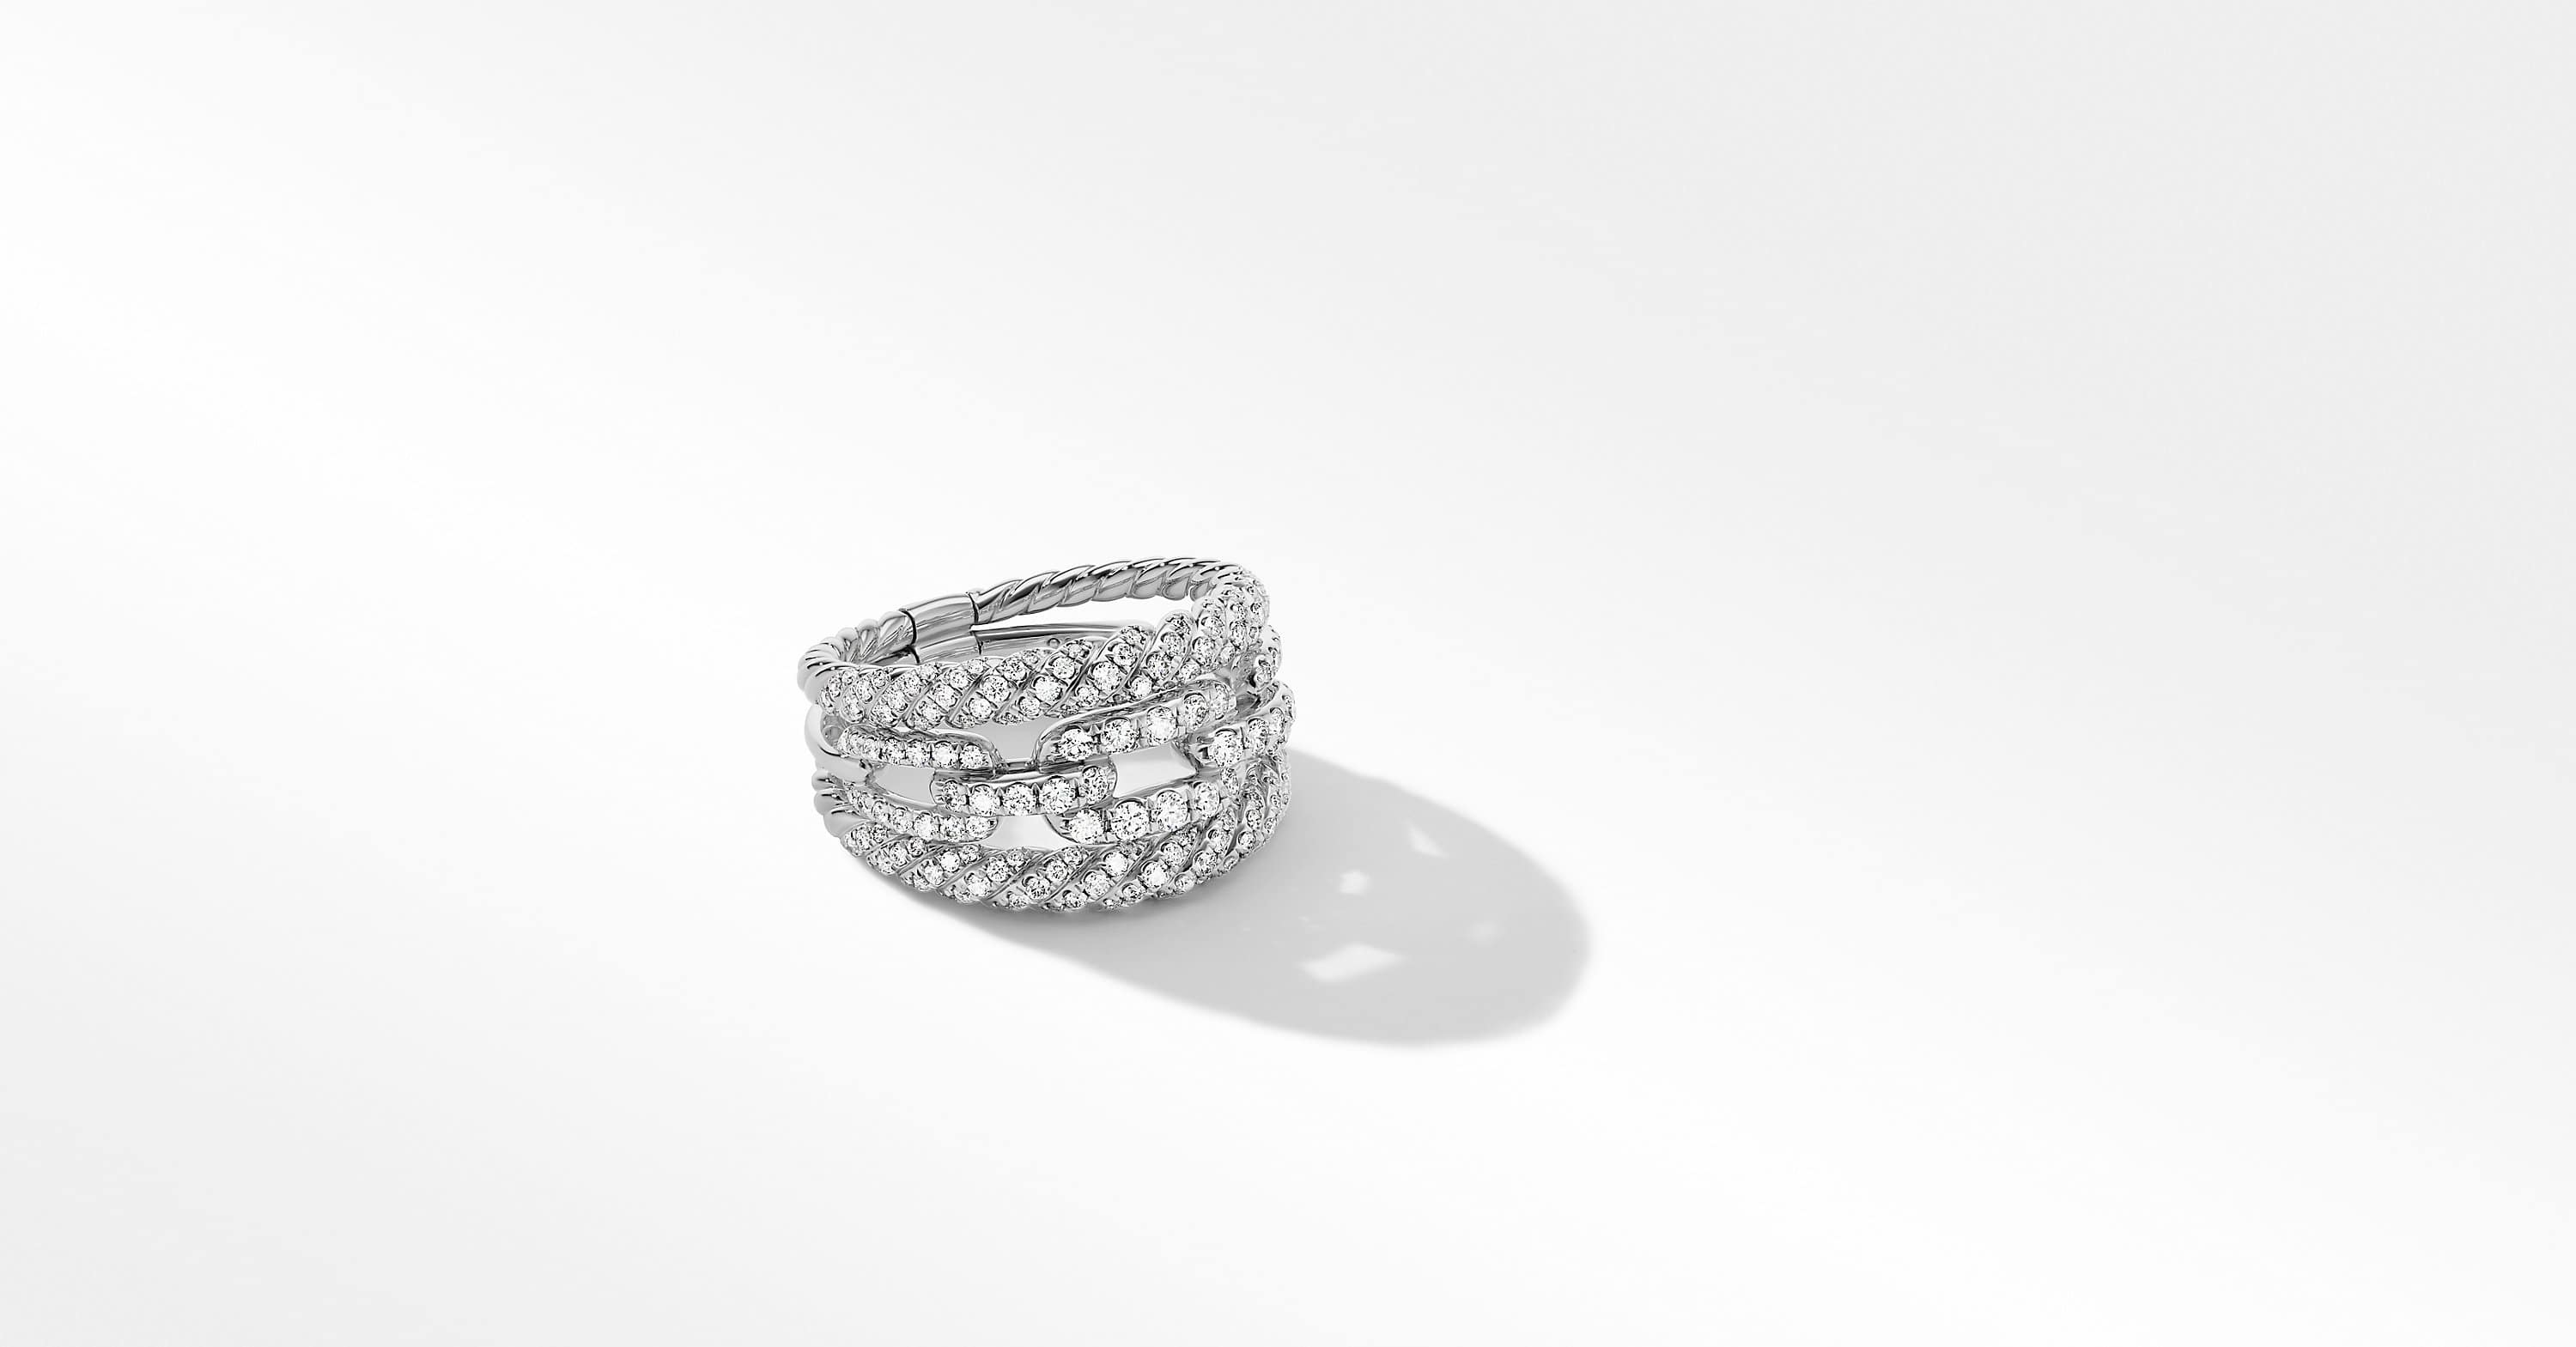 Stax Three-Row Ring in 18K White Gold with Full Pavé, 14mm